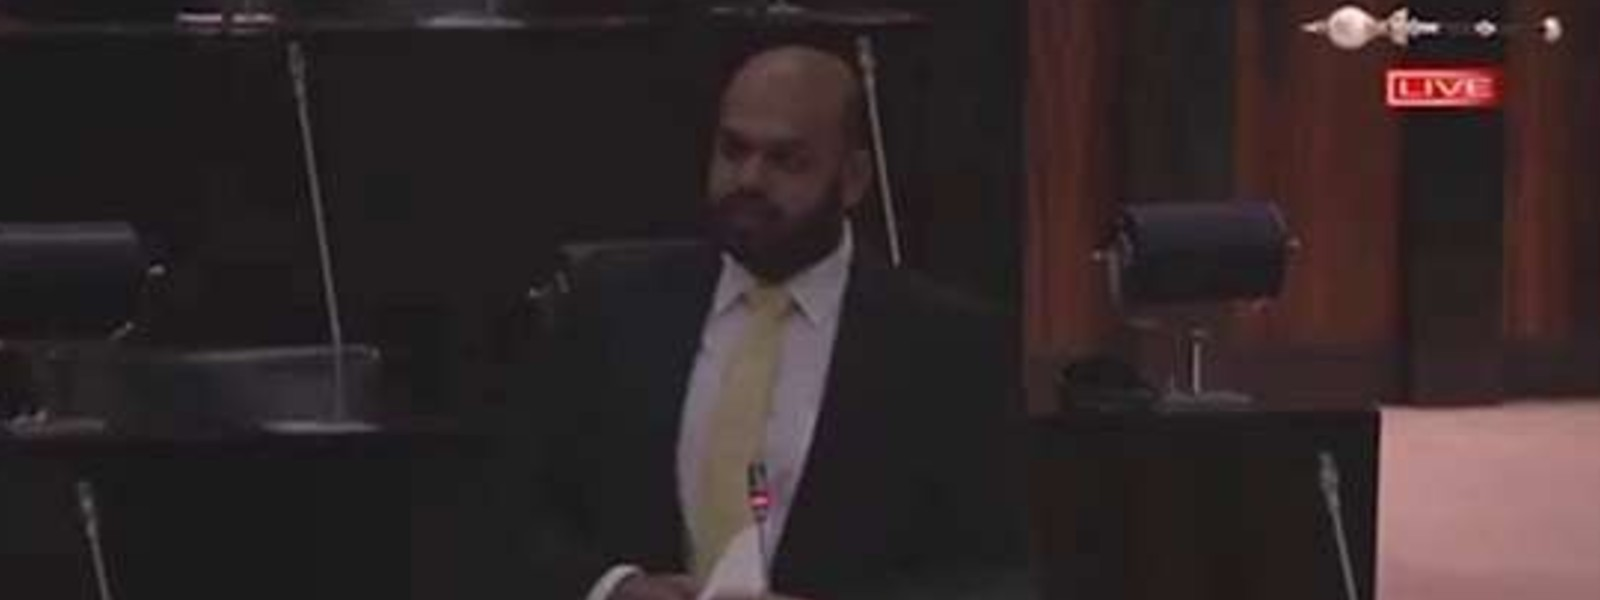 Every citizen should be proud to call themselves Sri Lankan; MP Shanakiyan